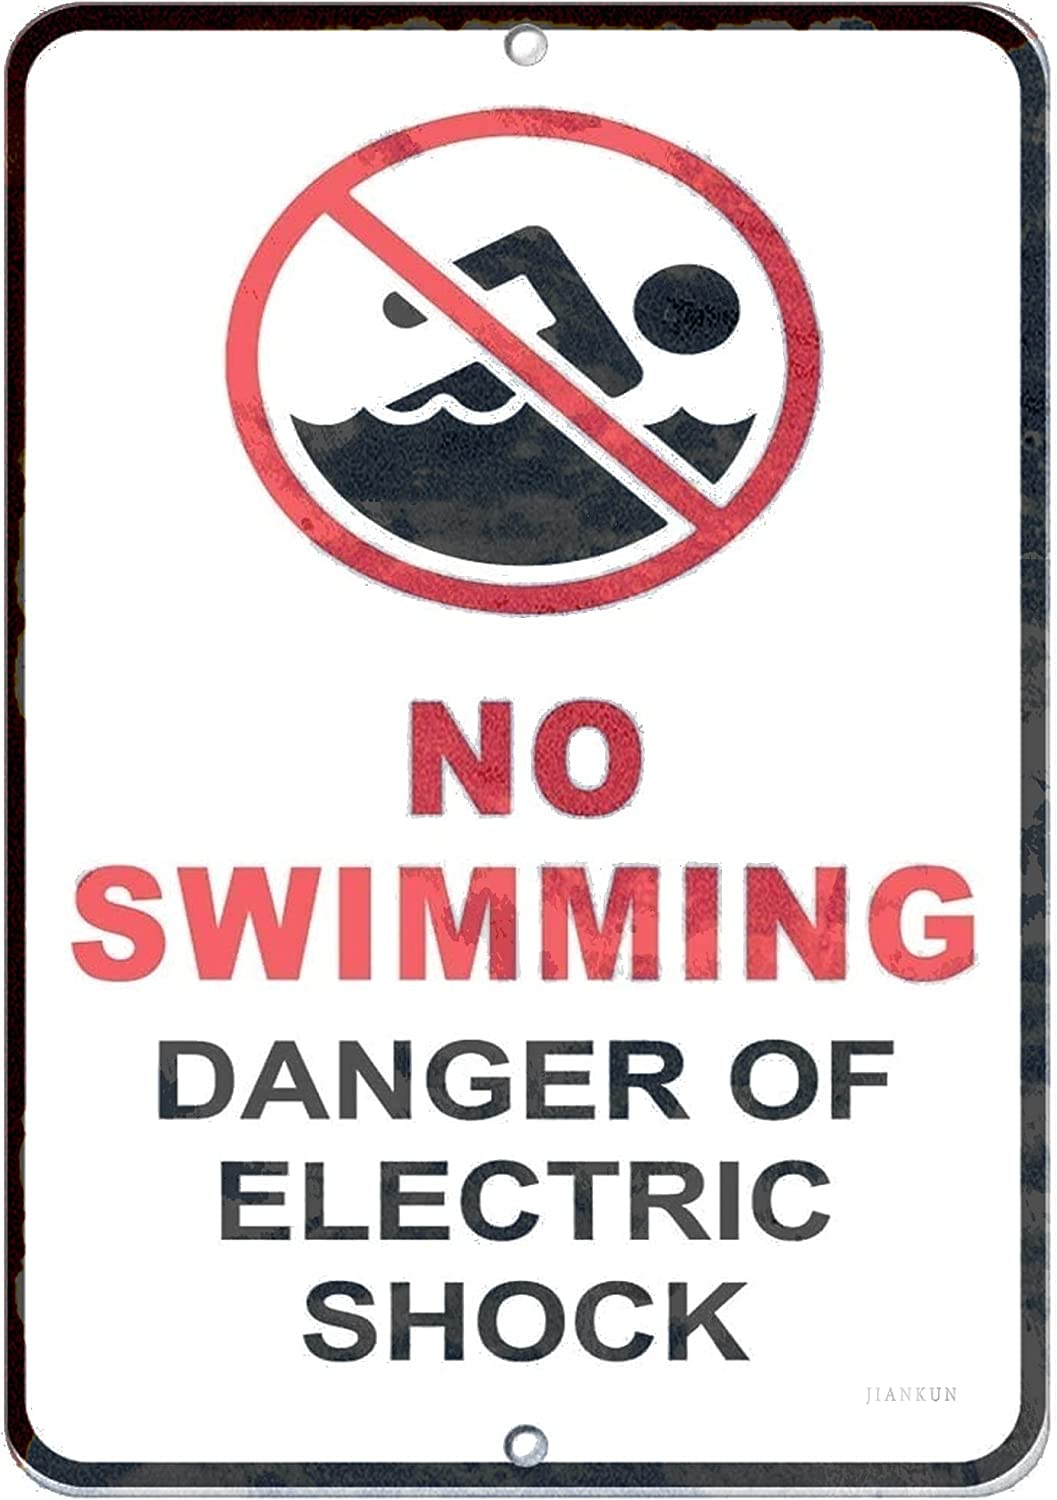 J.DXHYA Man Cave High material Decor 2 Pieces No Swimming Danger Sign Warning Popular product